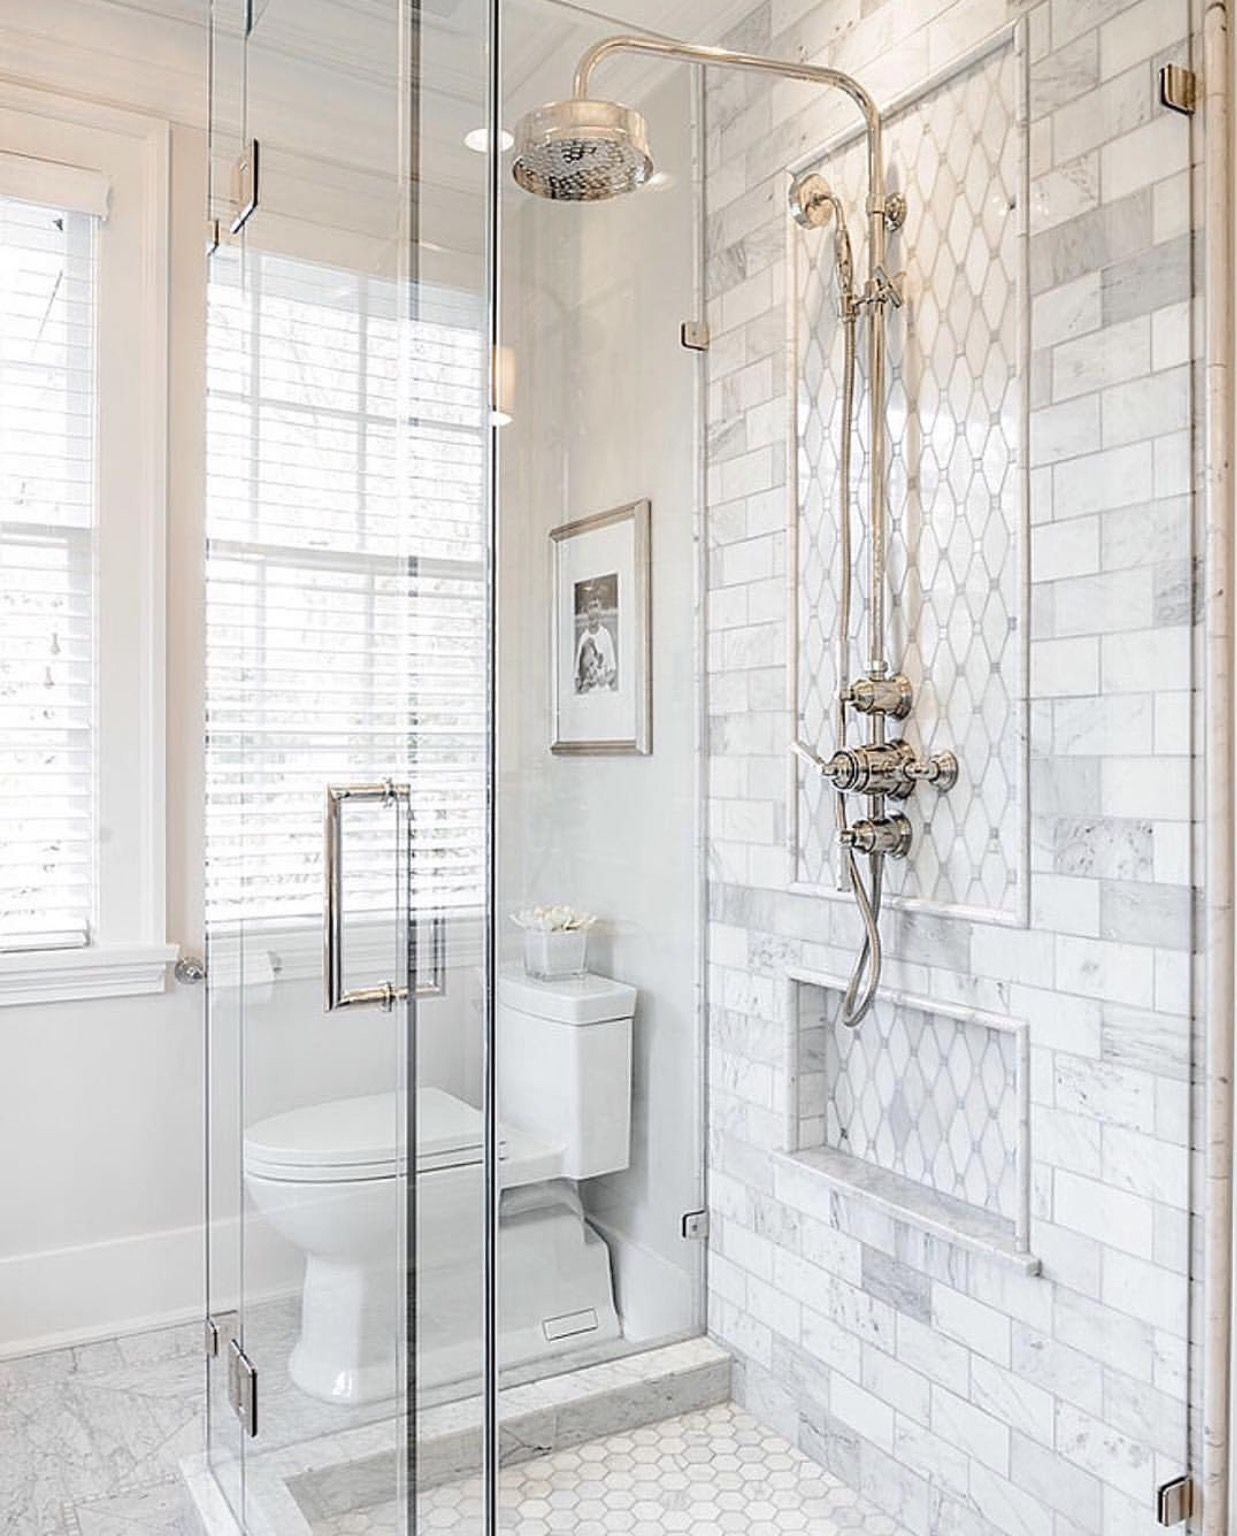 Love the shower tiles and the glass enclosure home improvement